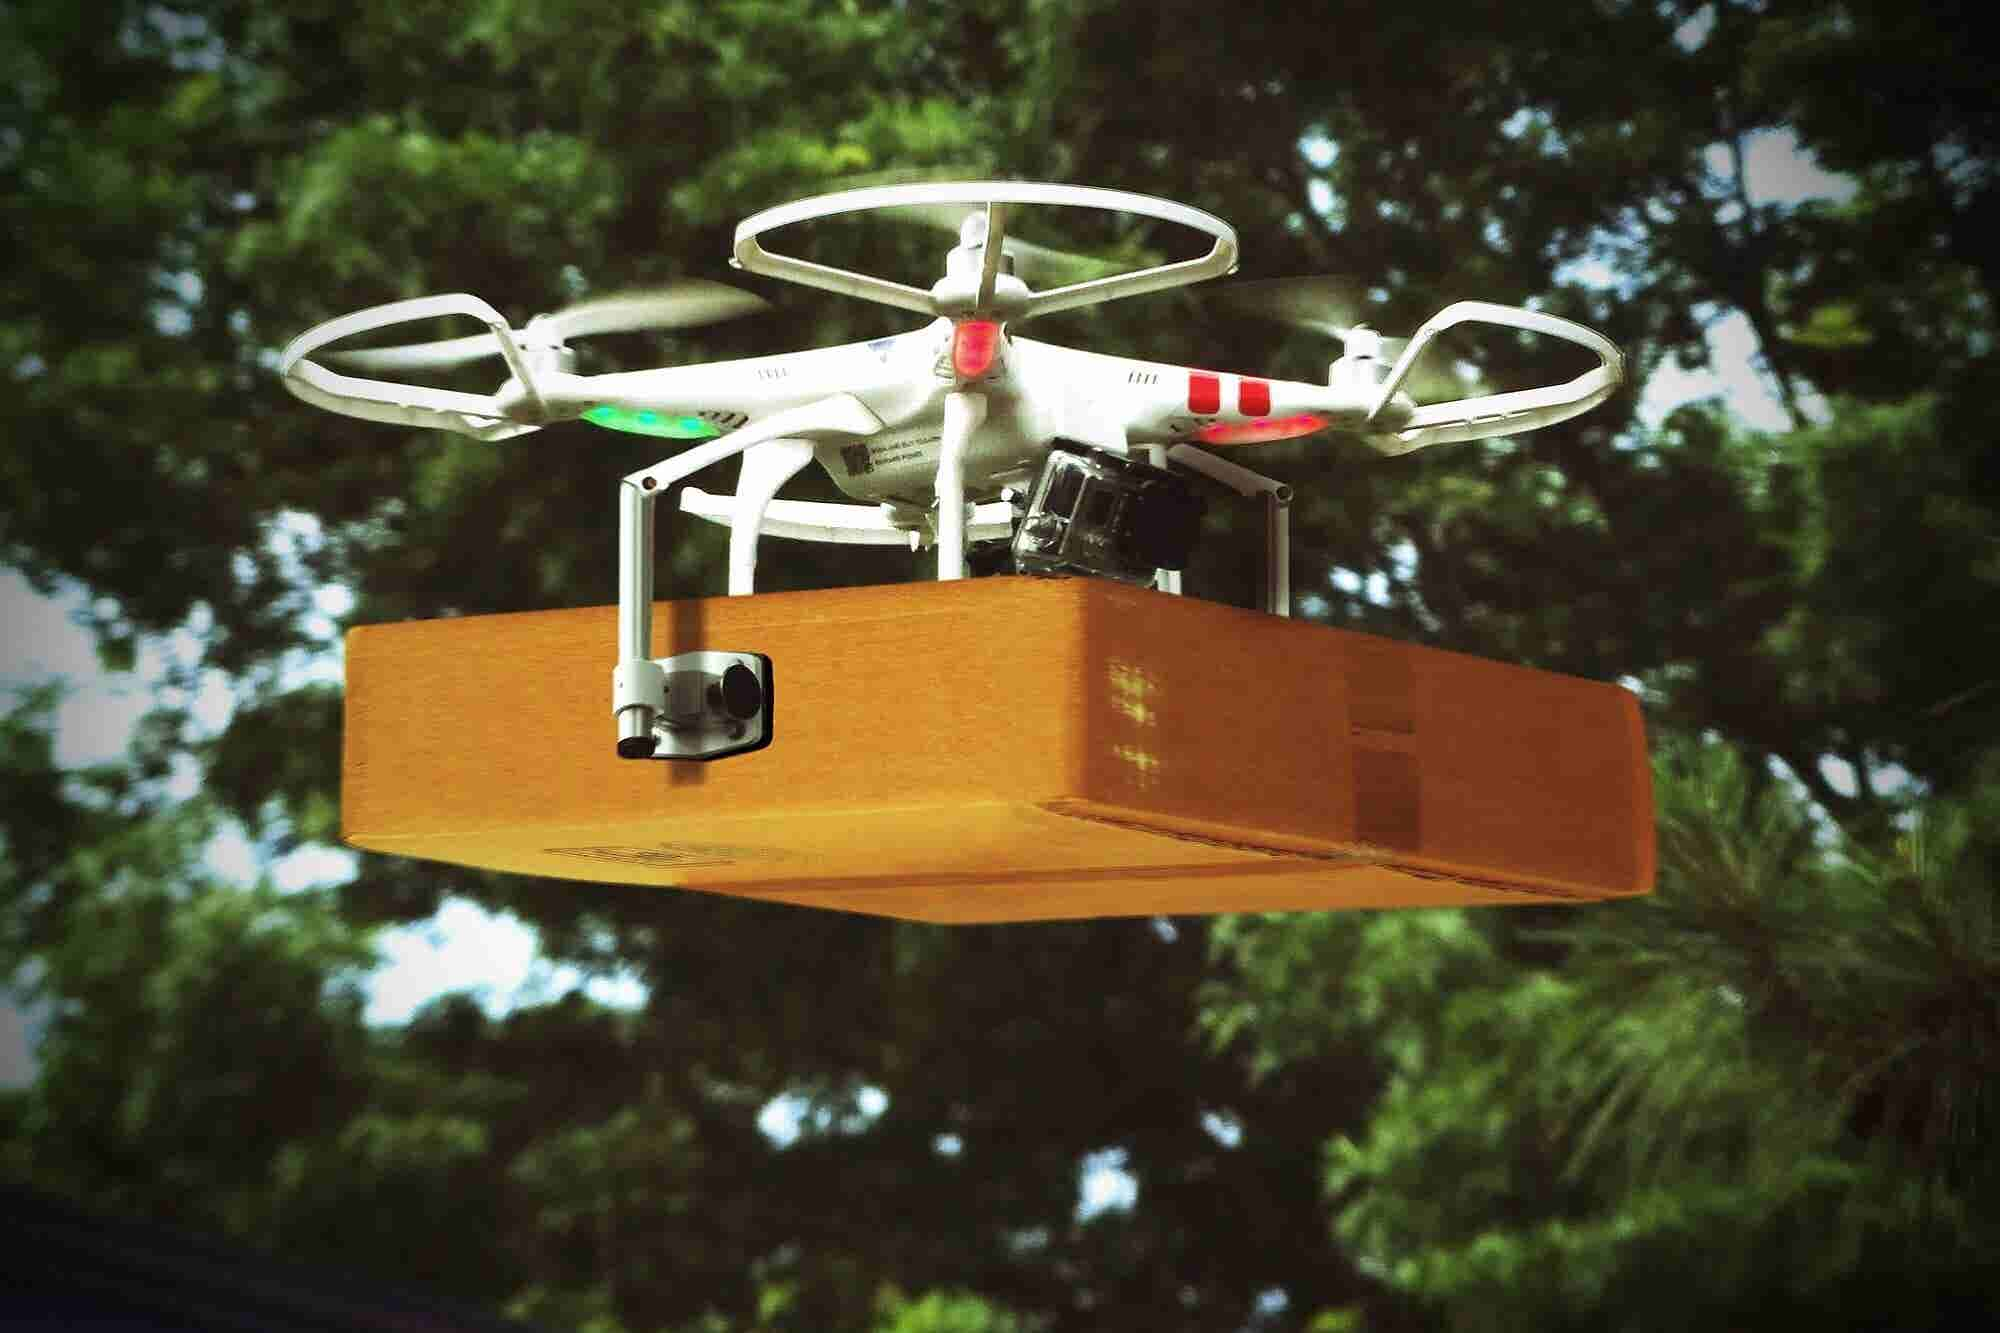 Zomato Is All Set to Fly Higher With Drones, But Is India Ready For It?